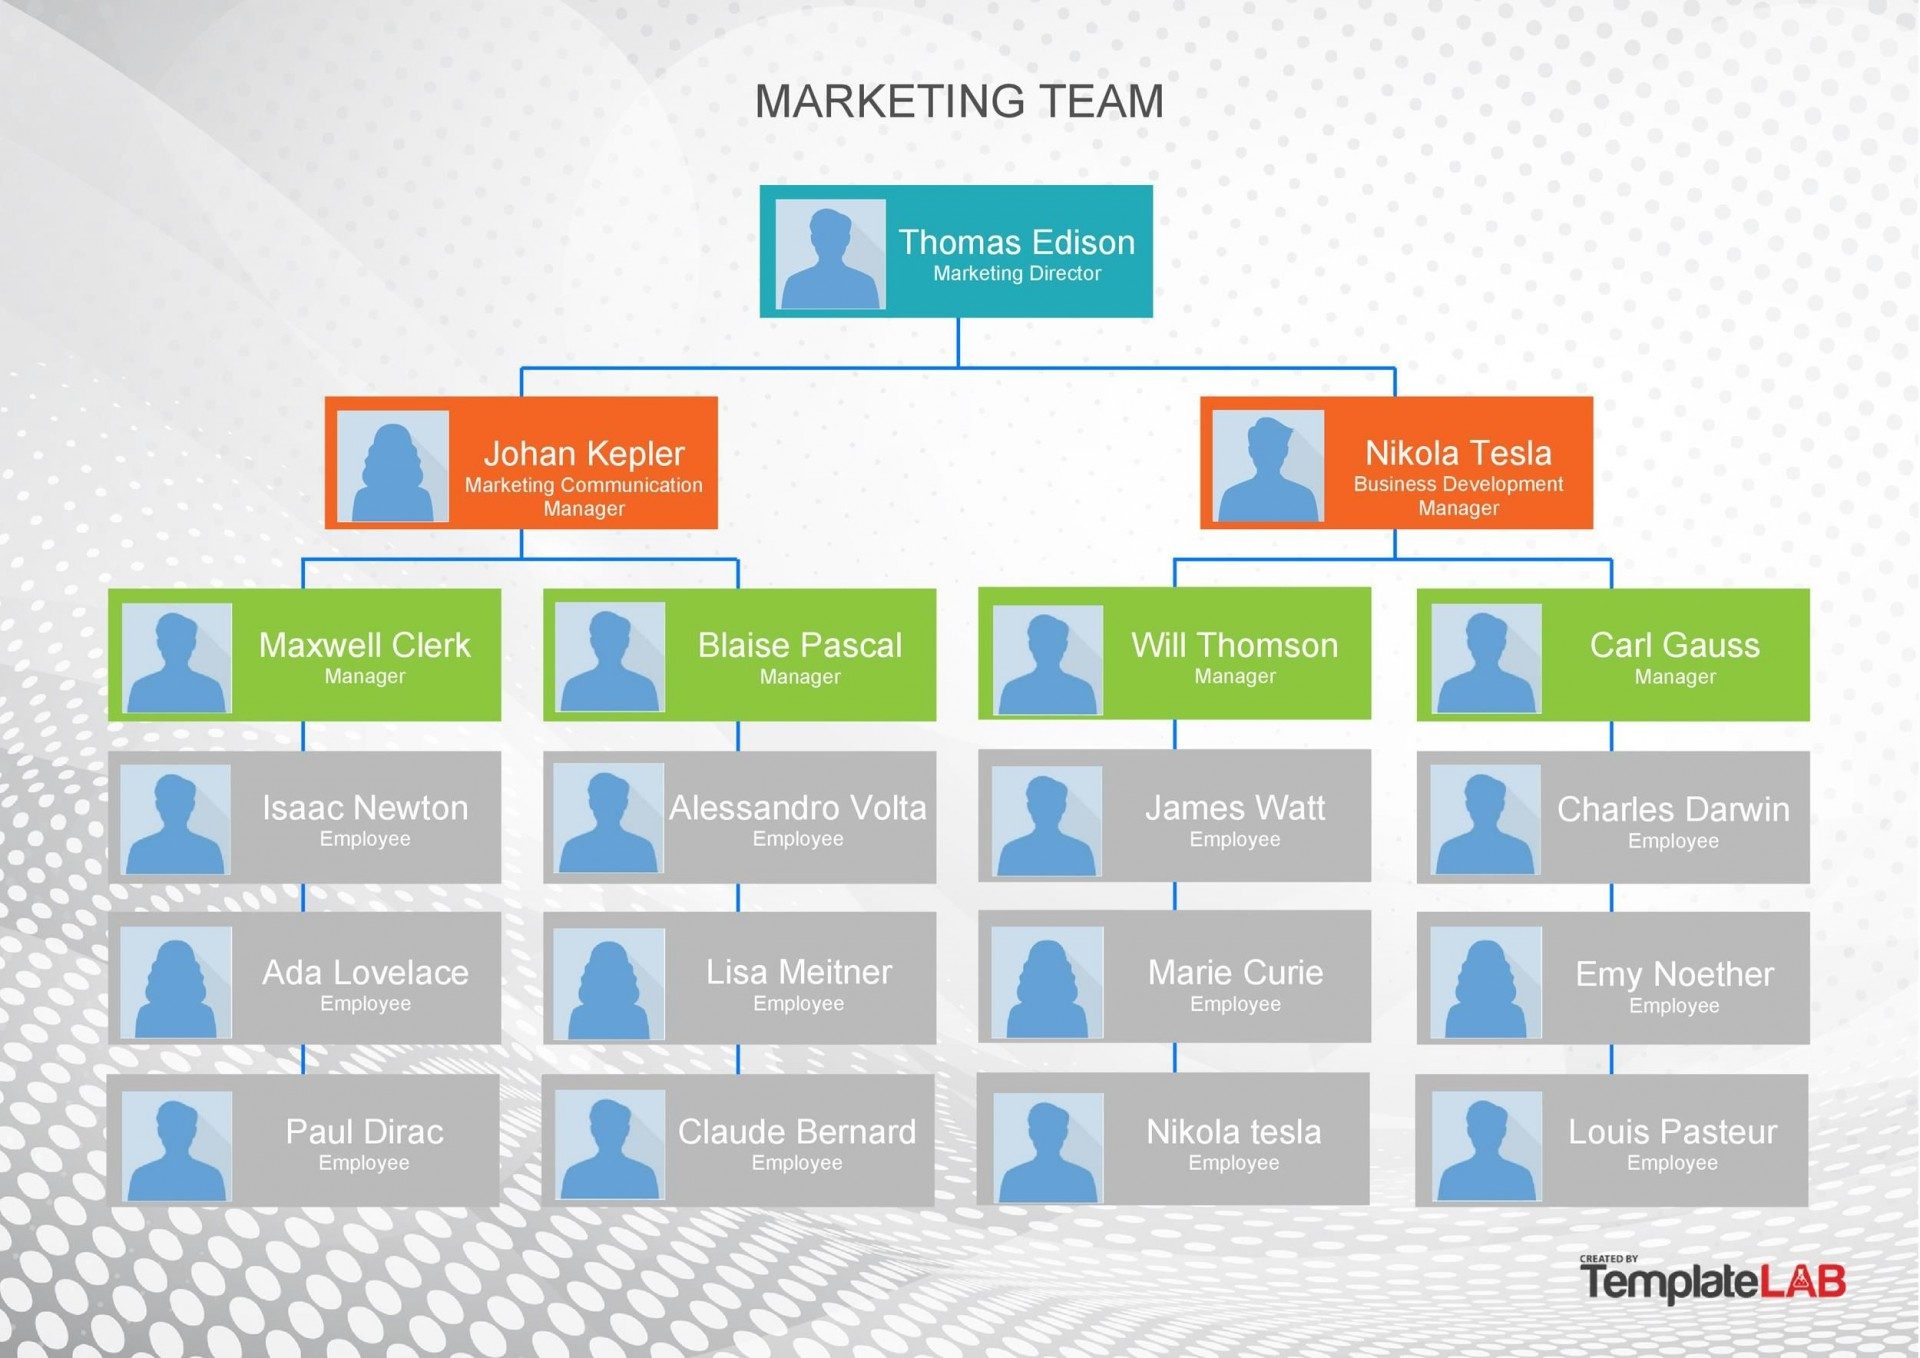 005 Dreaded Organizational Chart Template Excel High Definition  Organization Download Org1920